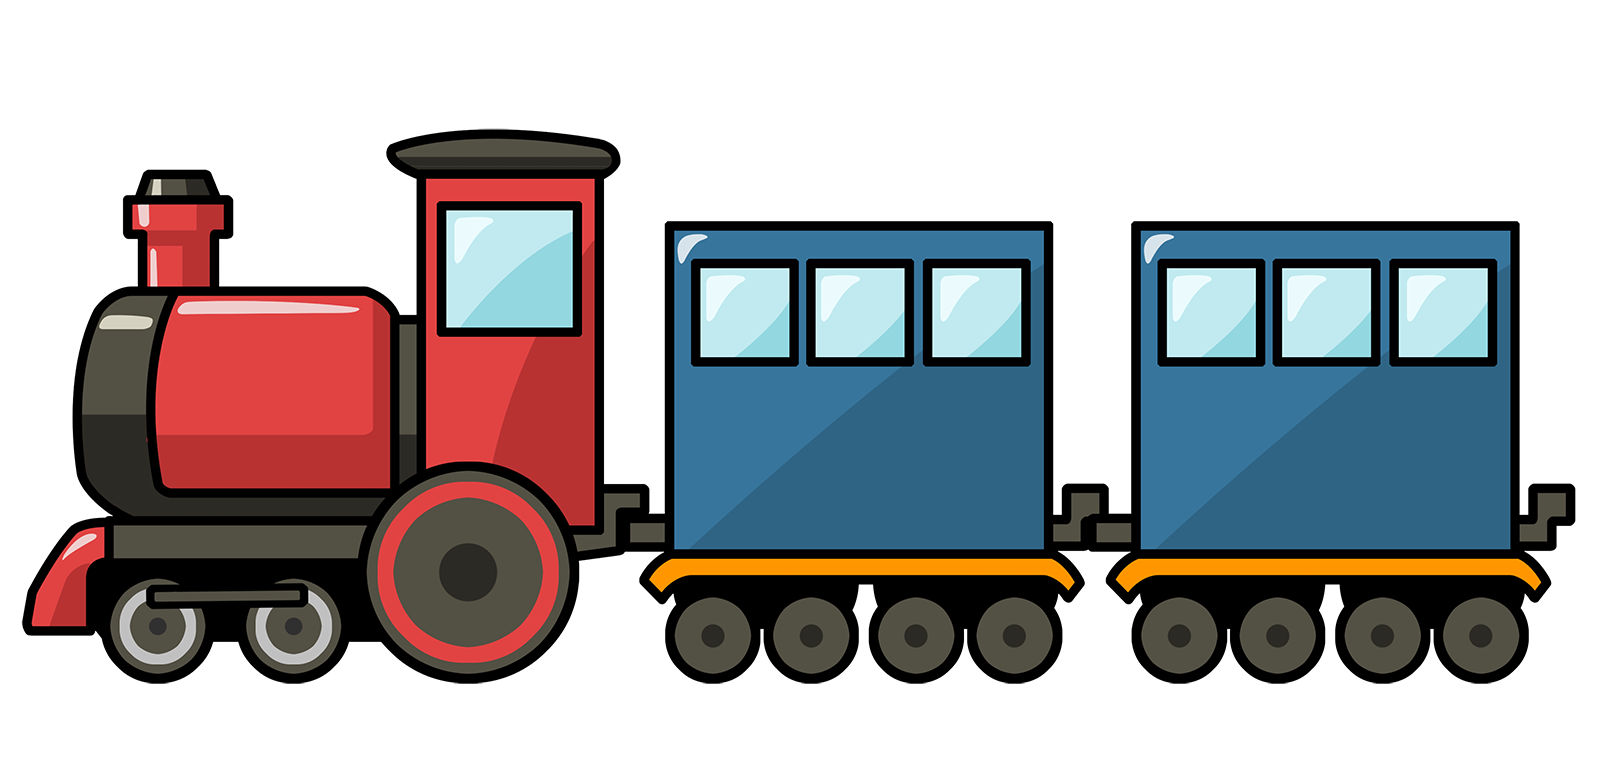 Cartoon Pictures Of Trains - ClipArt Best